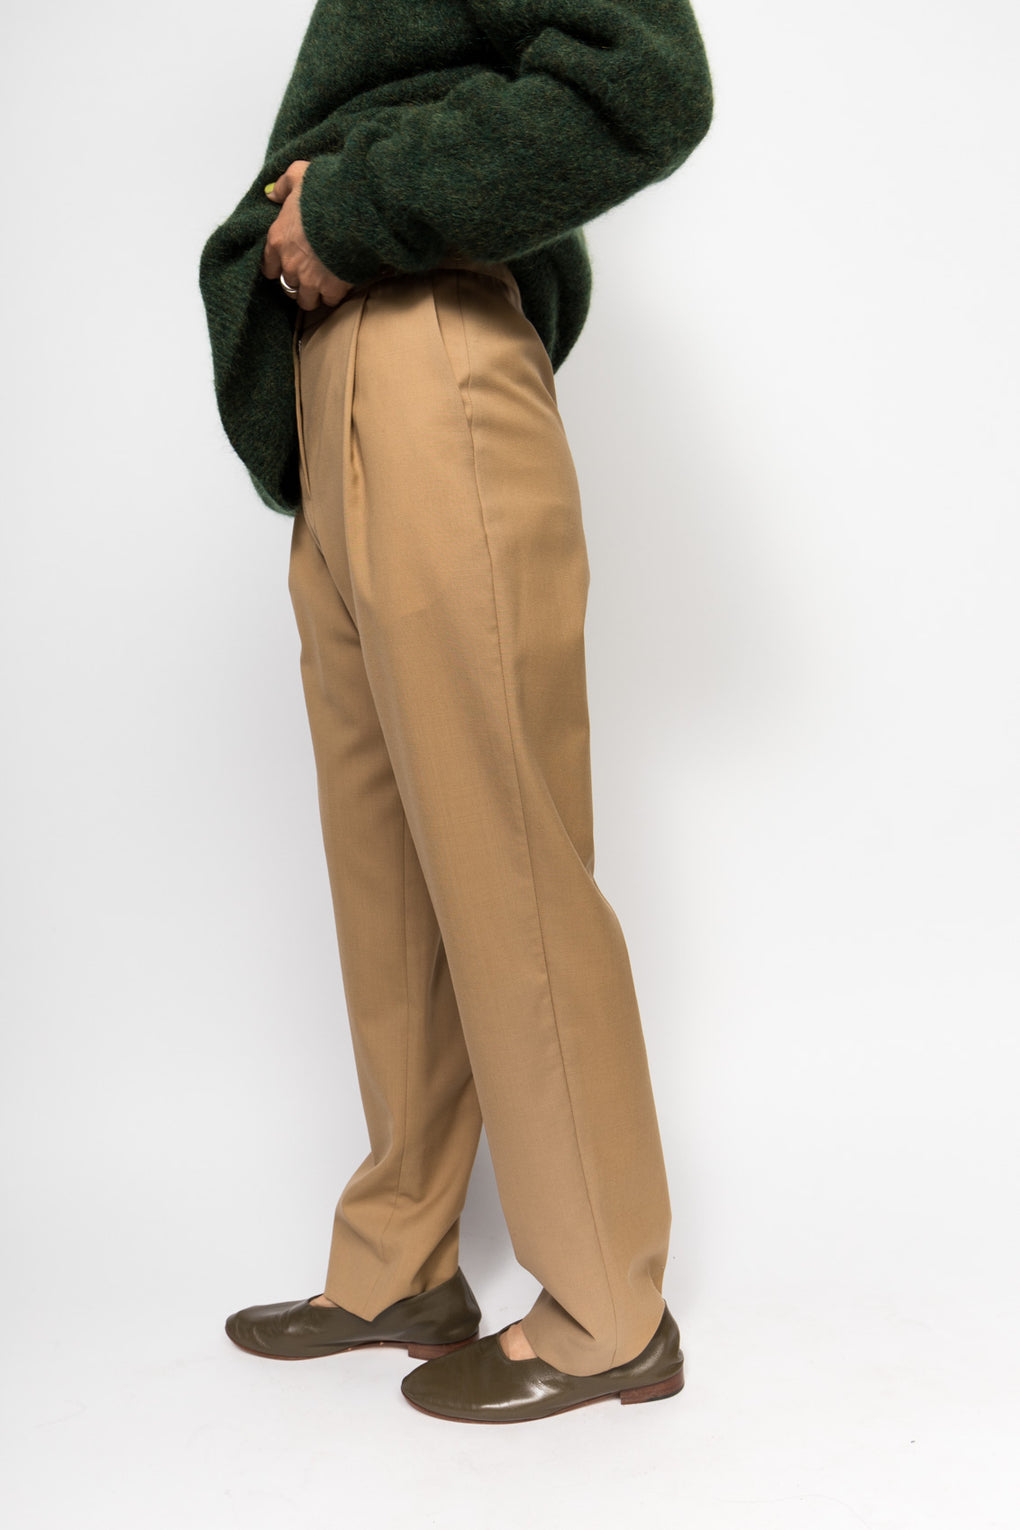 Norse Projects Disa Wool Trouser-Camel Trouser-Wool Trouser-Idun-Saint Paul